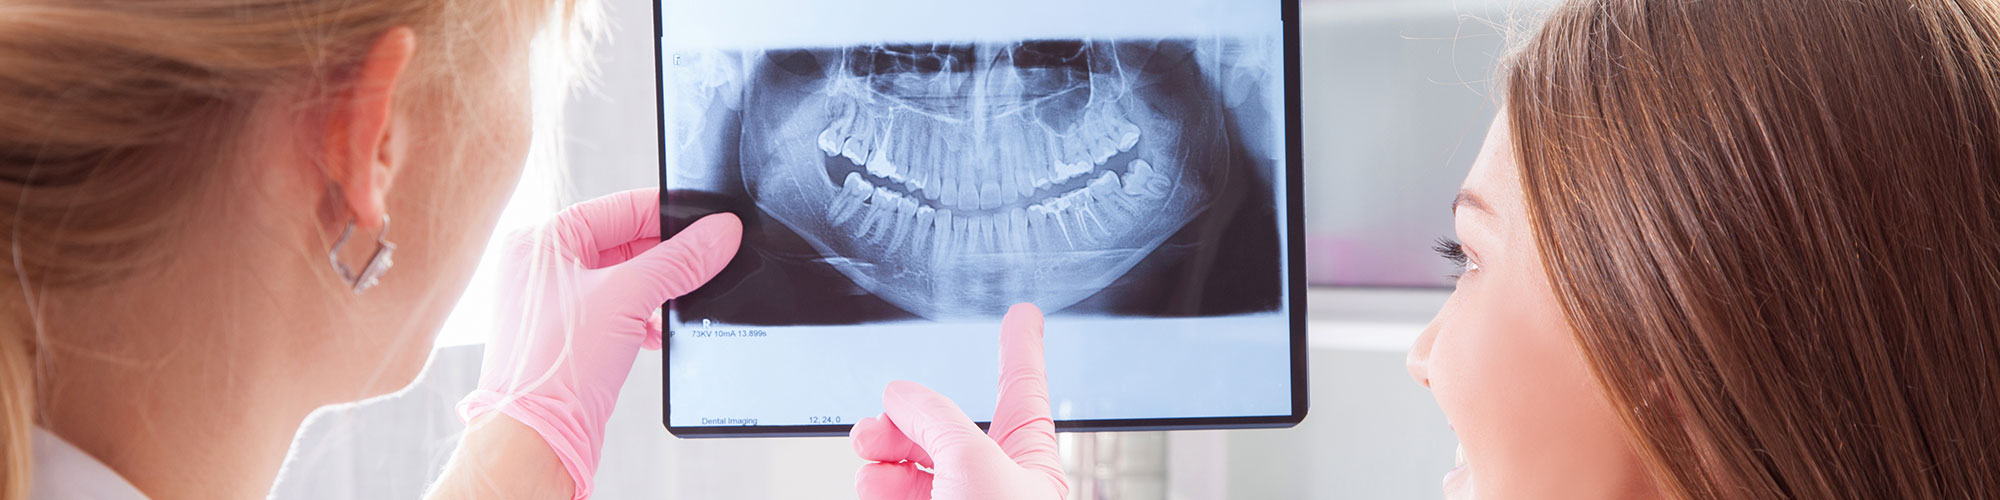 dentist looking at x-ray with patient